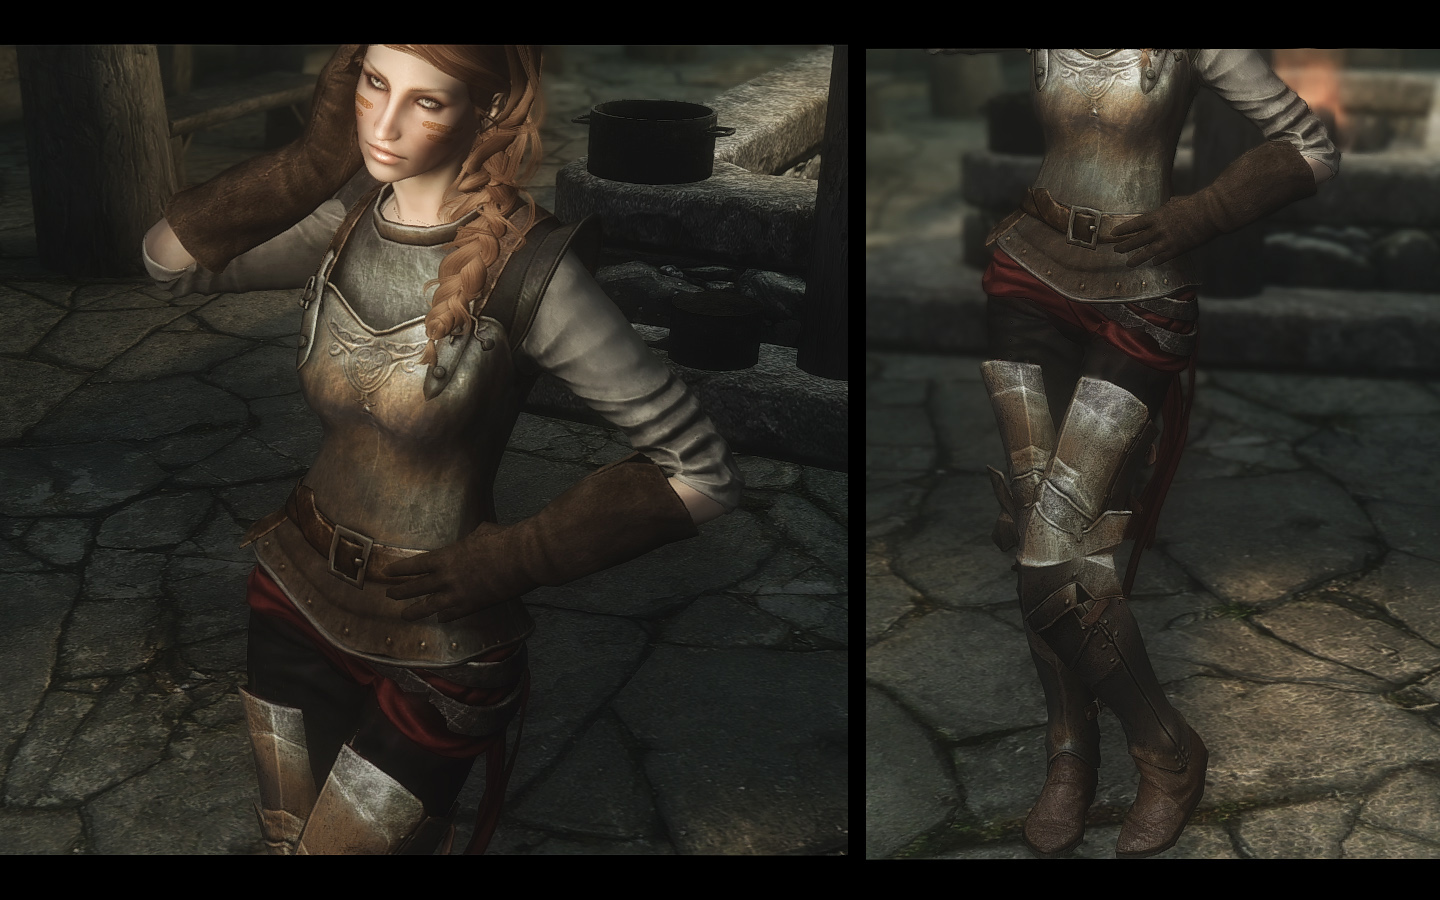 Message for plate armor downloaders - UPDATE